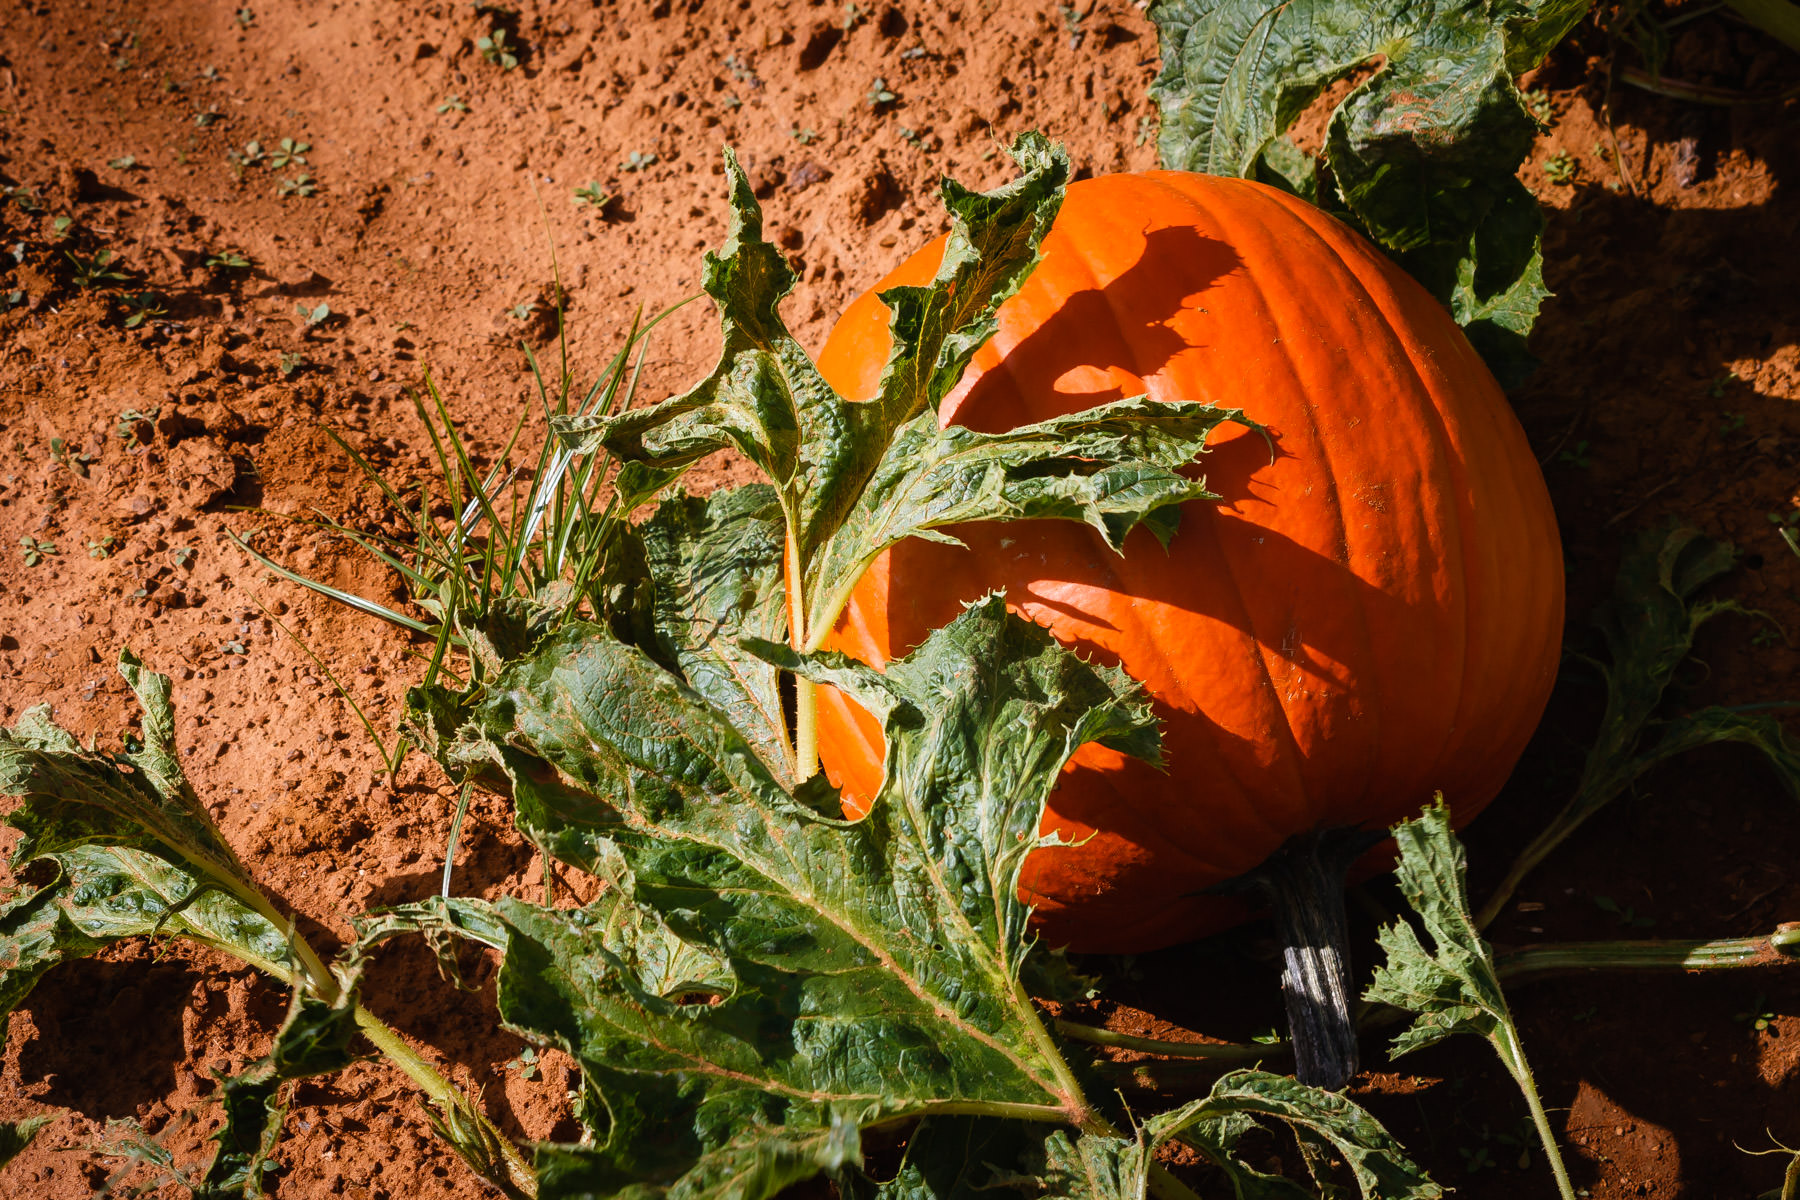 A pumpkin waits to be picked at Moore Farms, Bullard, Texas.